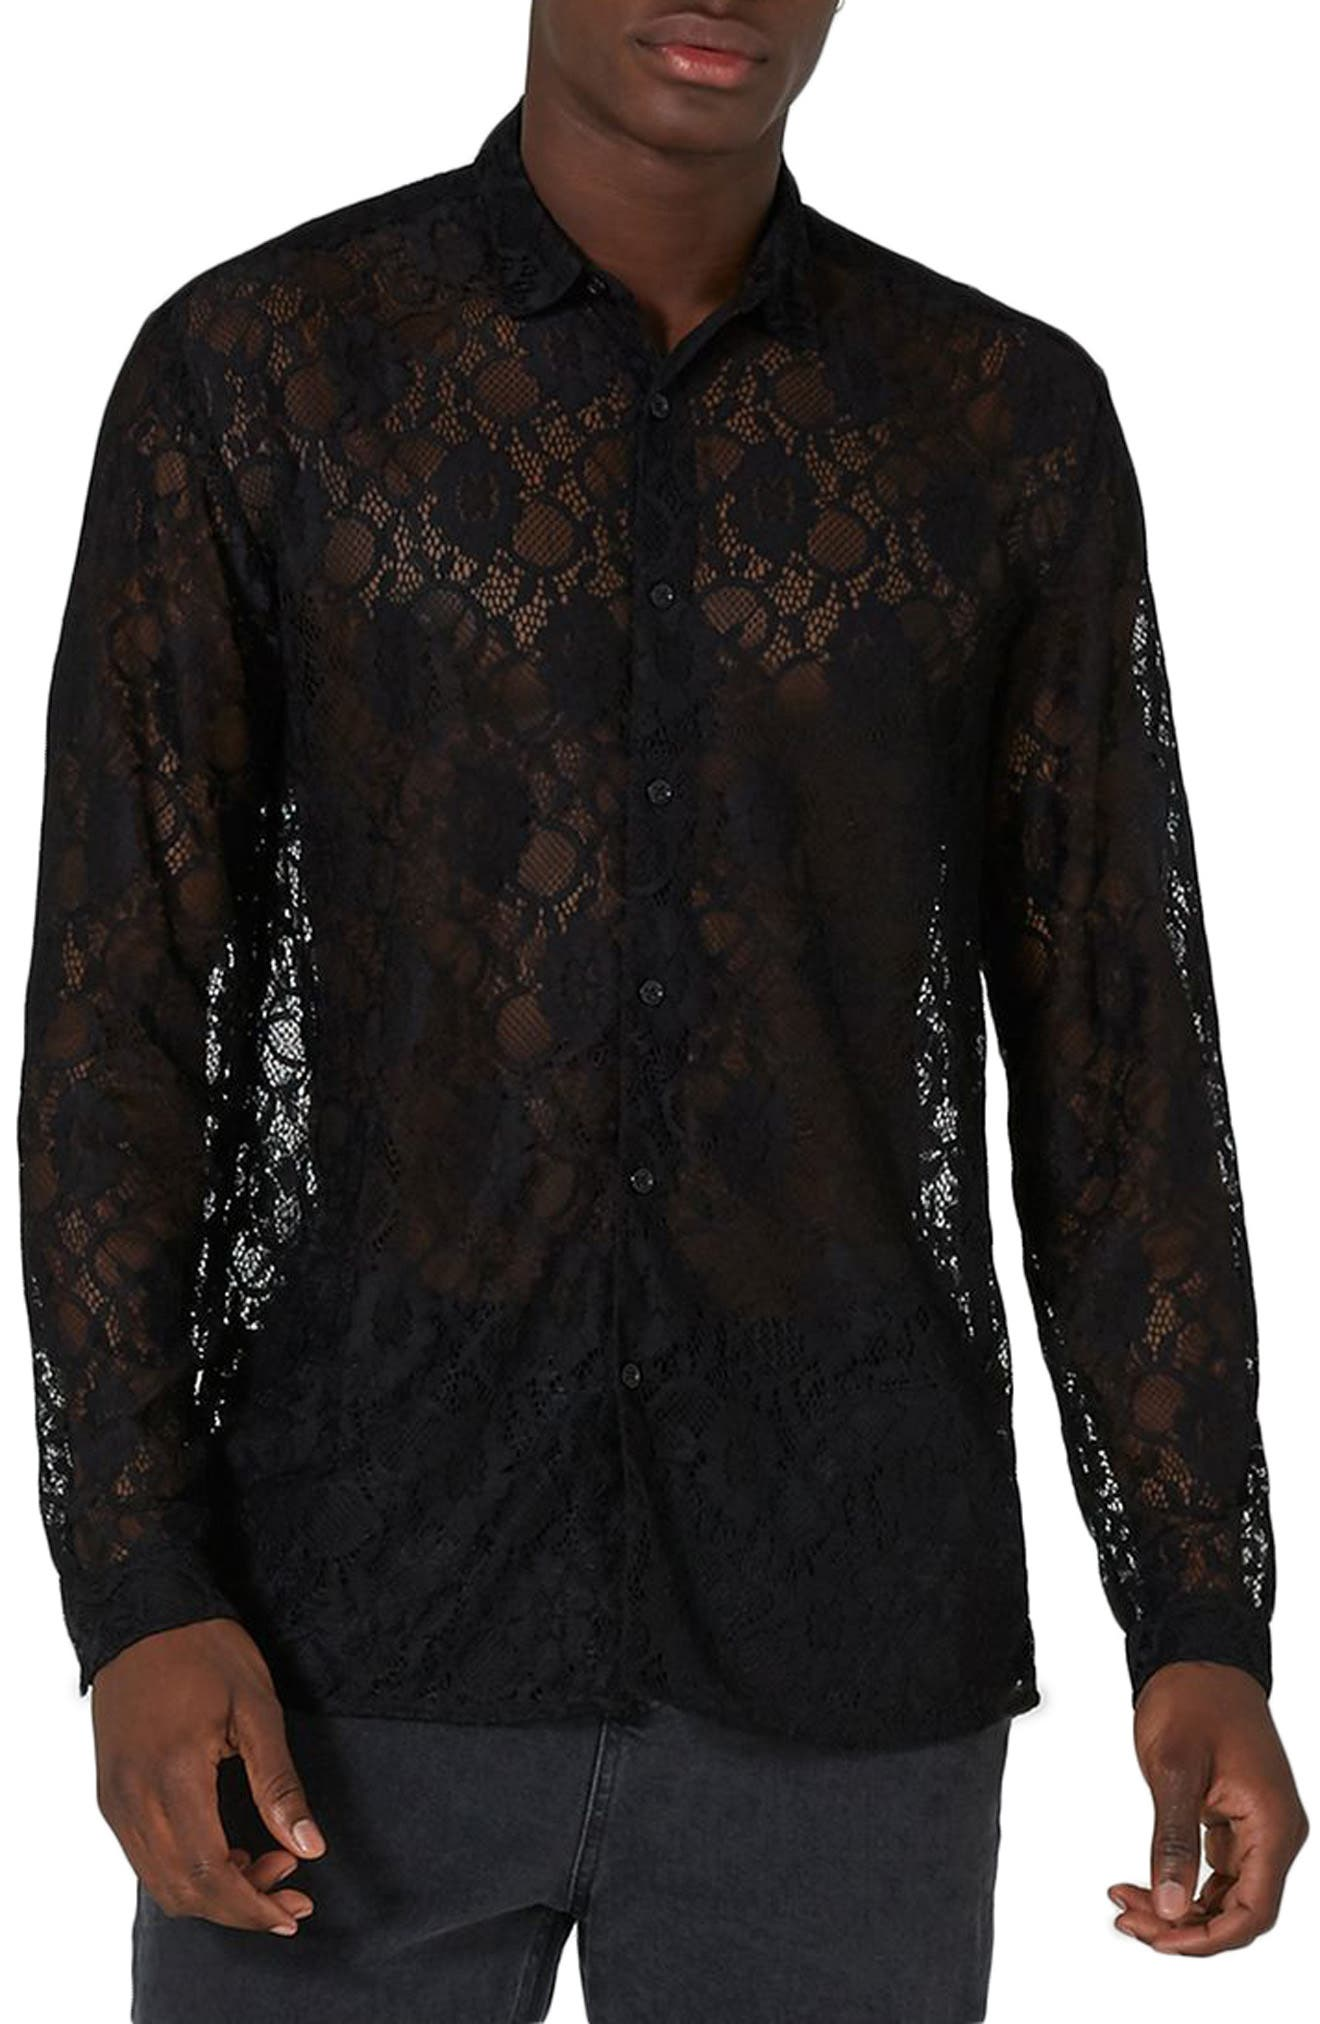 Muscle Fit Sheer Lace Shirt,                         Main,                         color, 001